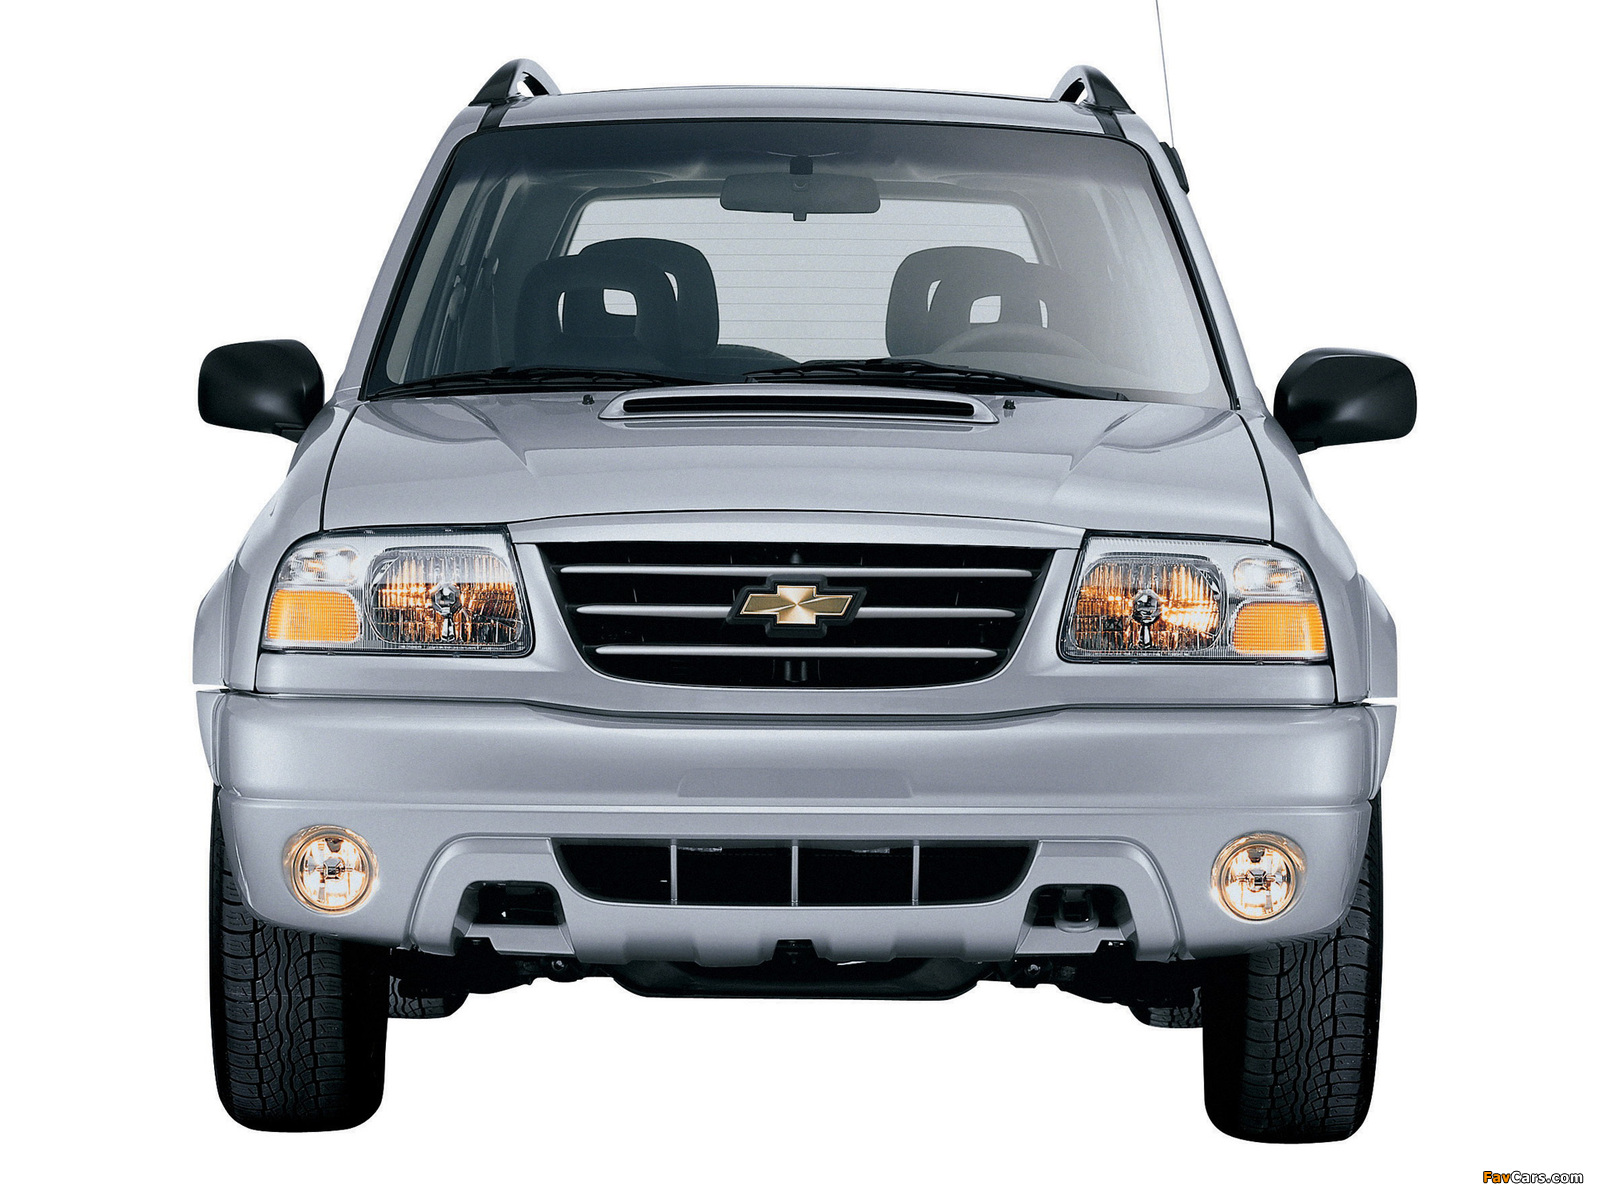 Chevrolet Tracker 2006 pictures (1600 x 1200)